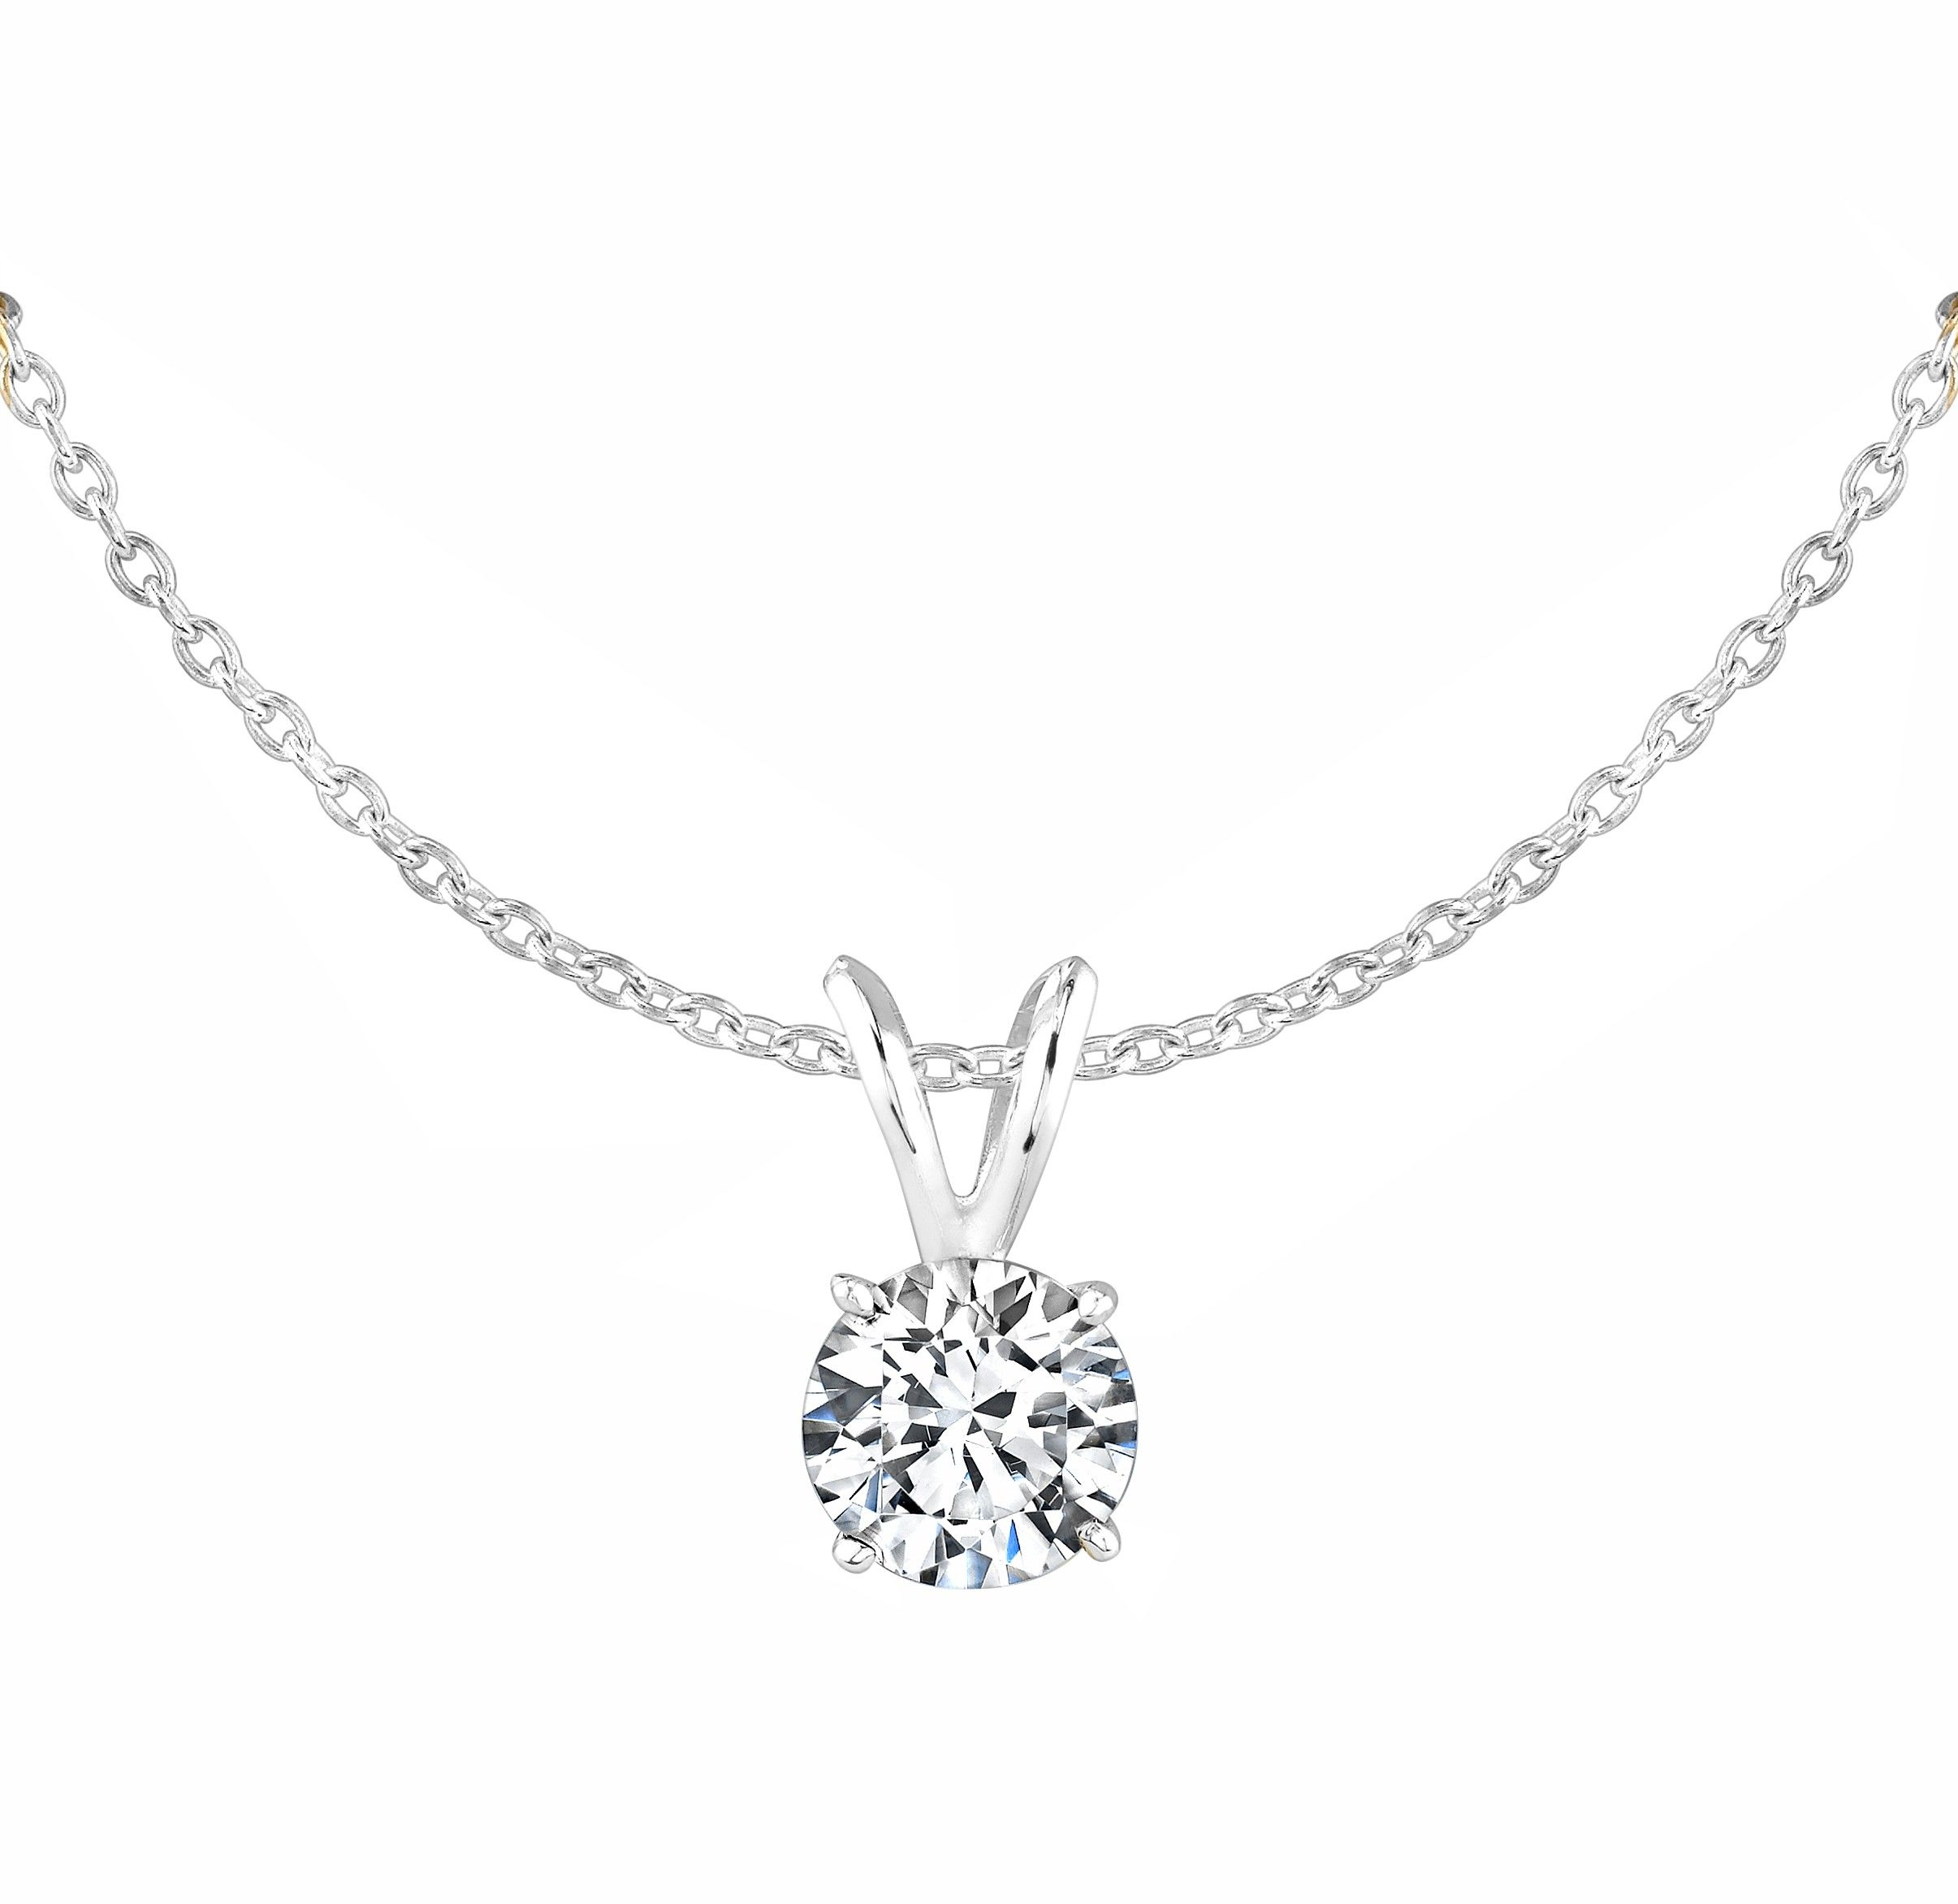 Sell your diamond pendant online for cash diamond diamonds sell your diamond pendant online for cash diamond diamonds jewelry jewellery mozeypictures Choice Image